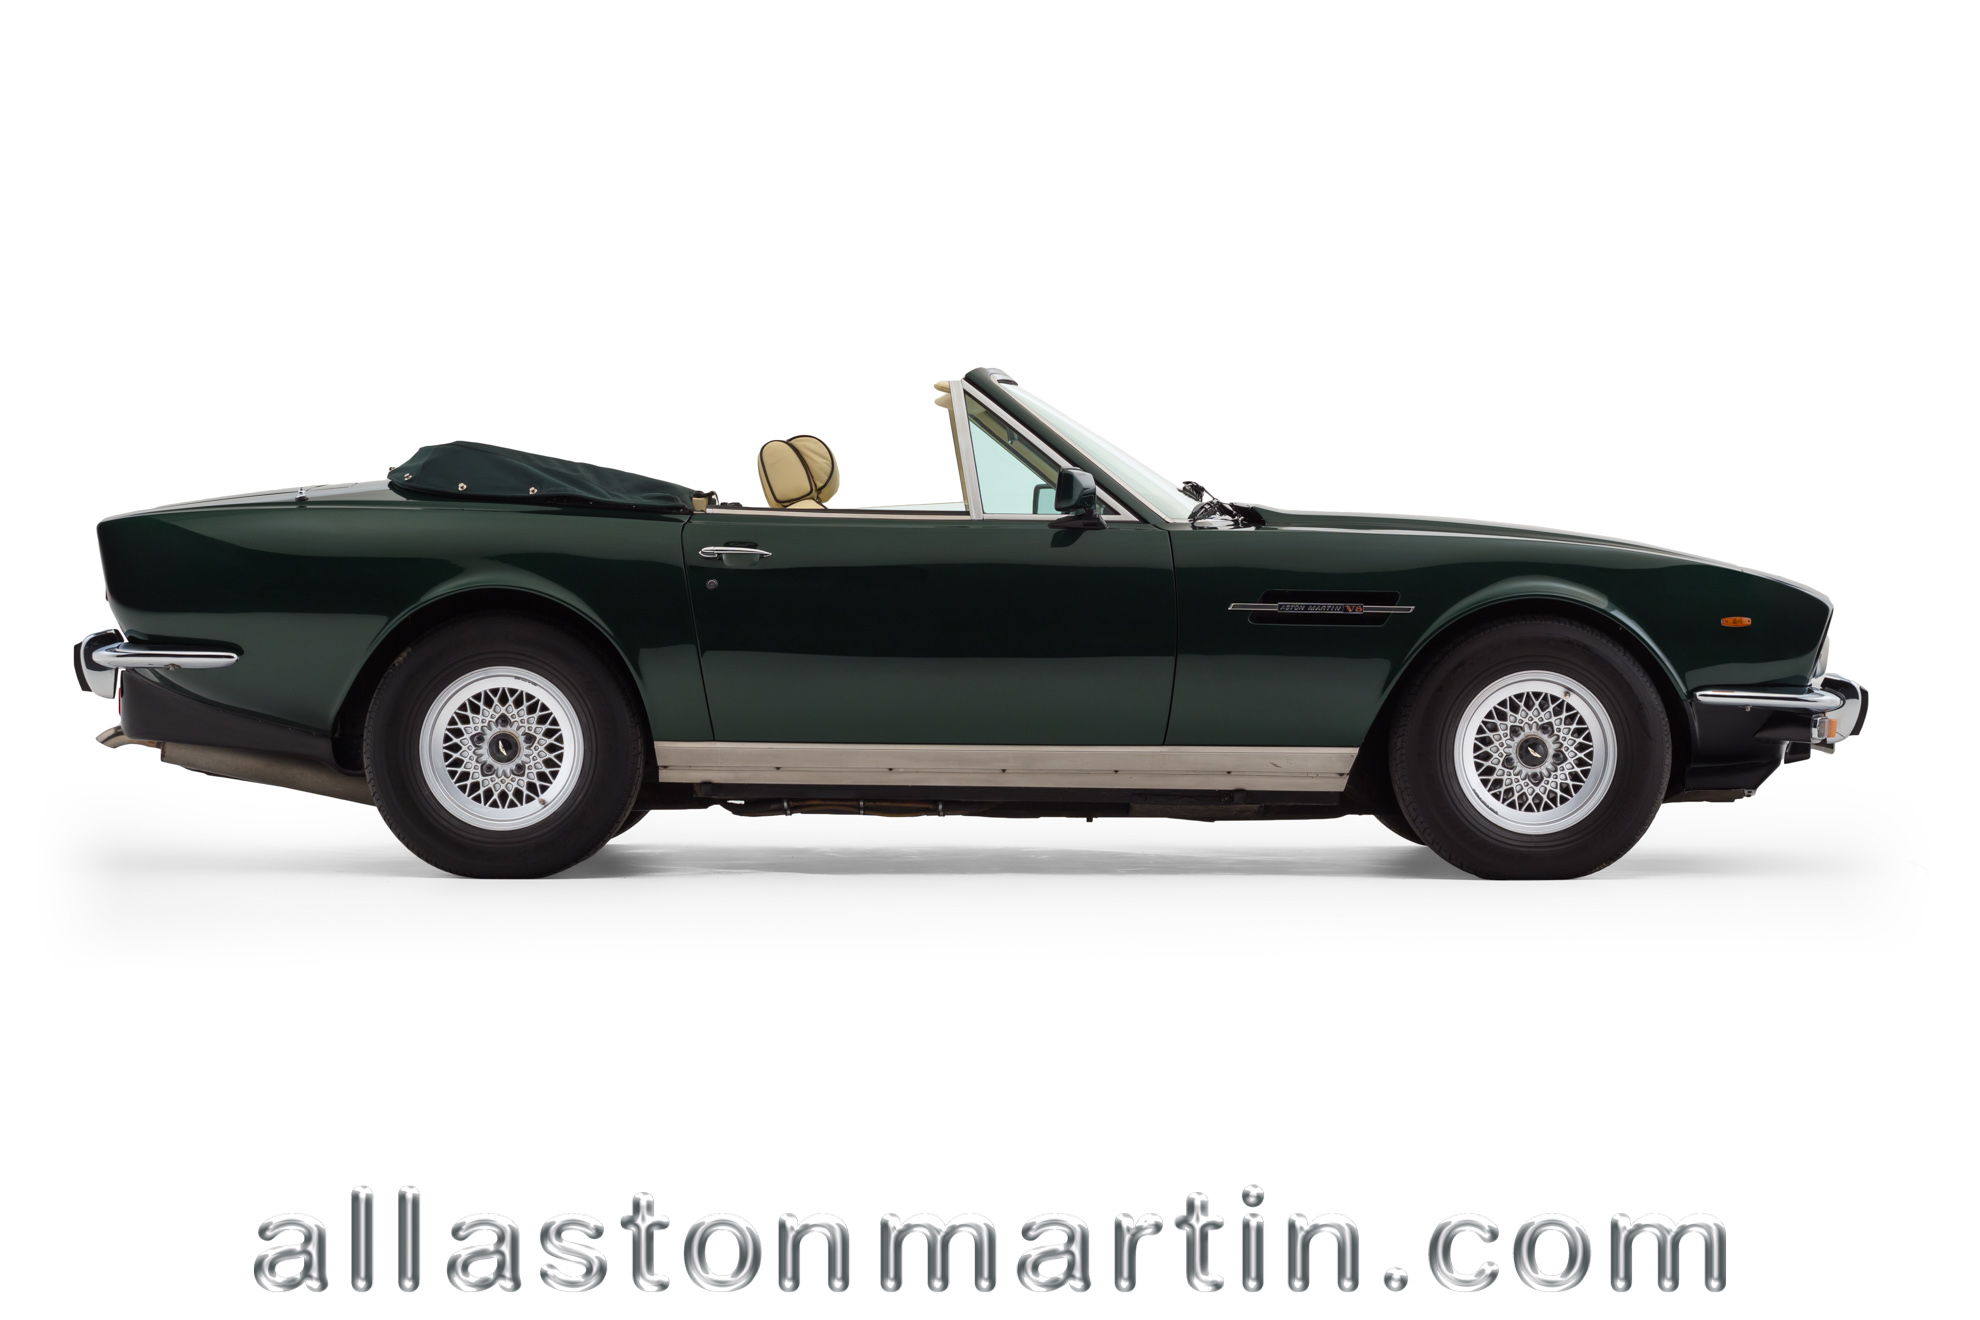 Aston Martin Cars For Sale - Buy Aston Martin - Details - All Aston ...